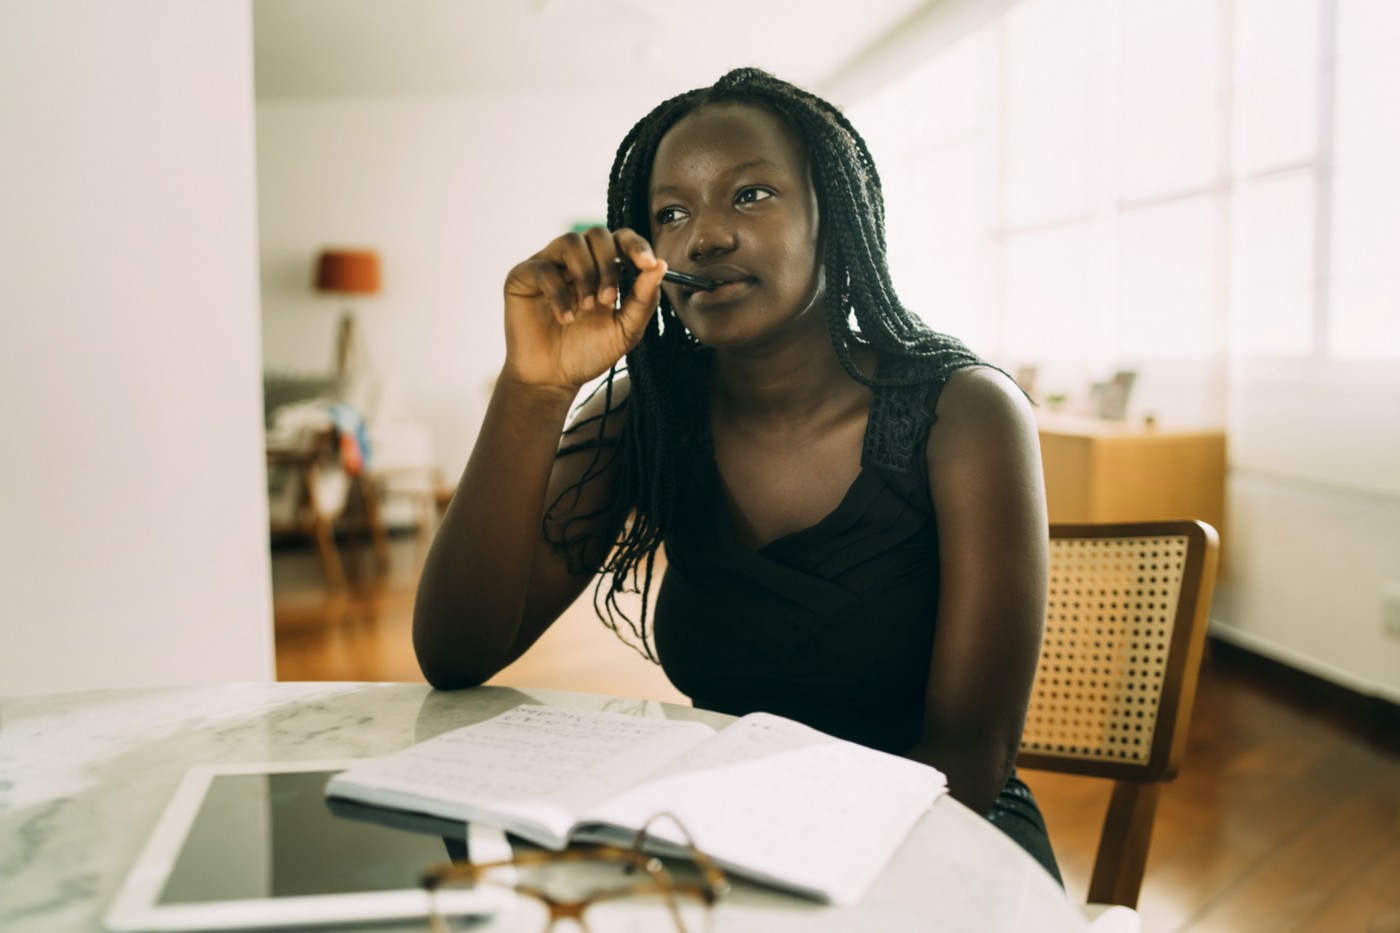 Black woman mulling her thoughts as she writes in her journal while sitting at a table.